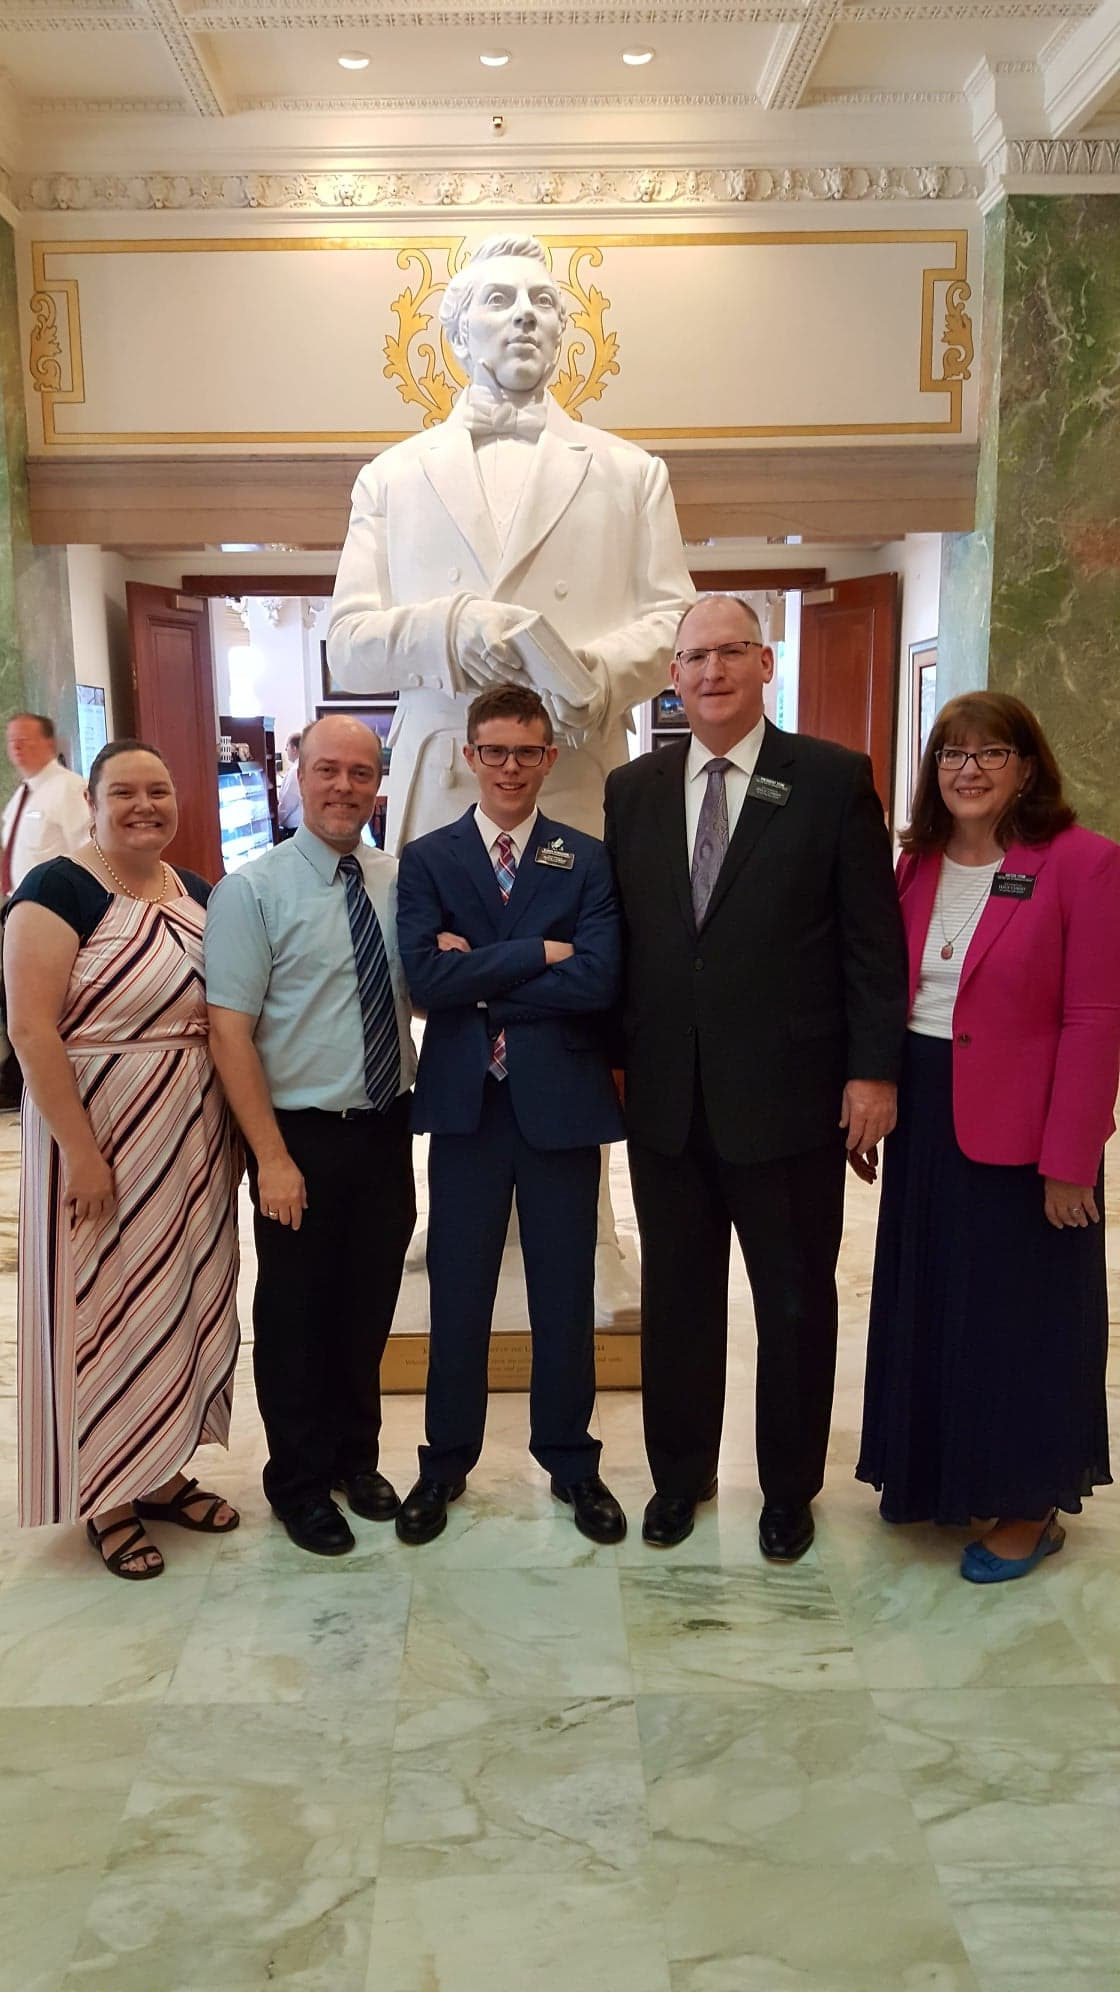 From left: Danyelle and John Ferguson, far left, drop off their son, Elder Isaac Ferguson, center, at the Utah Salt Lake City Headquarters Mission in 2018. Also pictured are President and Sister Fenn, far right, of the Utah Salt Lake City Headquarters Mission. Elder Ferguson is 19 and on autistic spectrum.